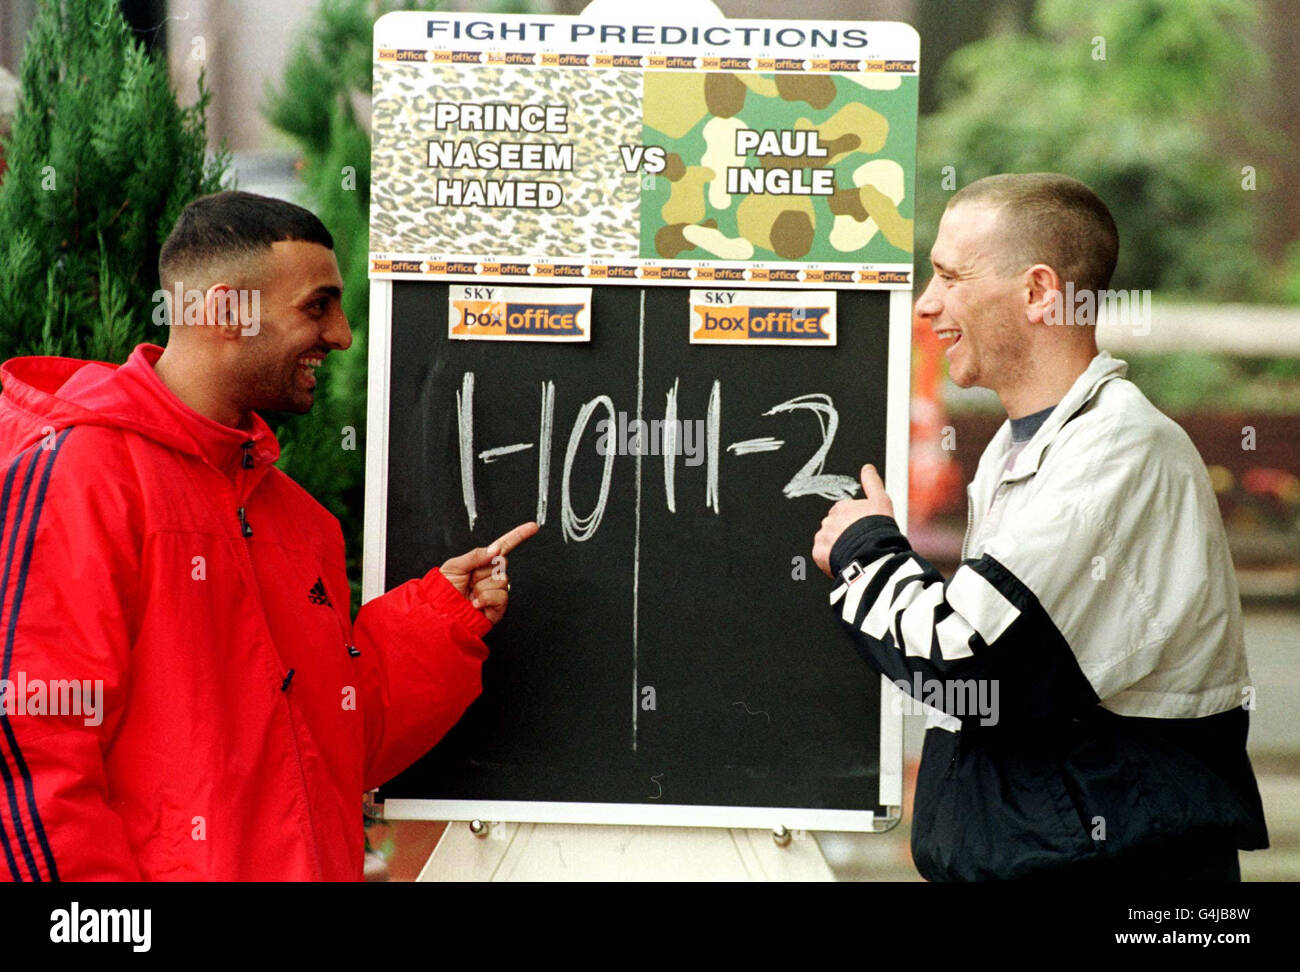 Naseem and Ingle pre-fight odds - Stock Image